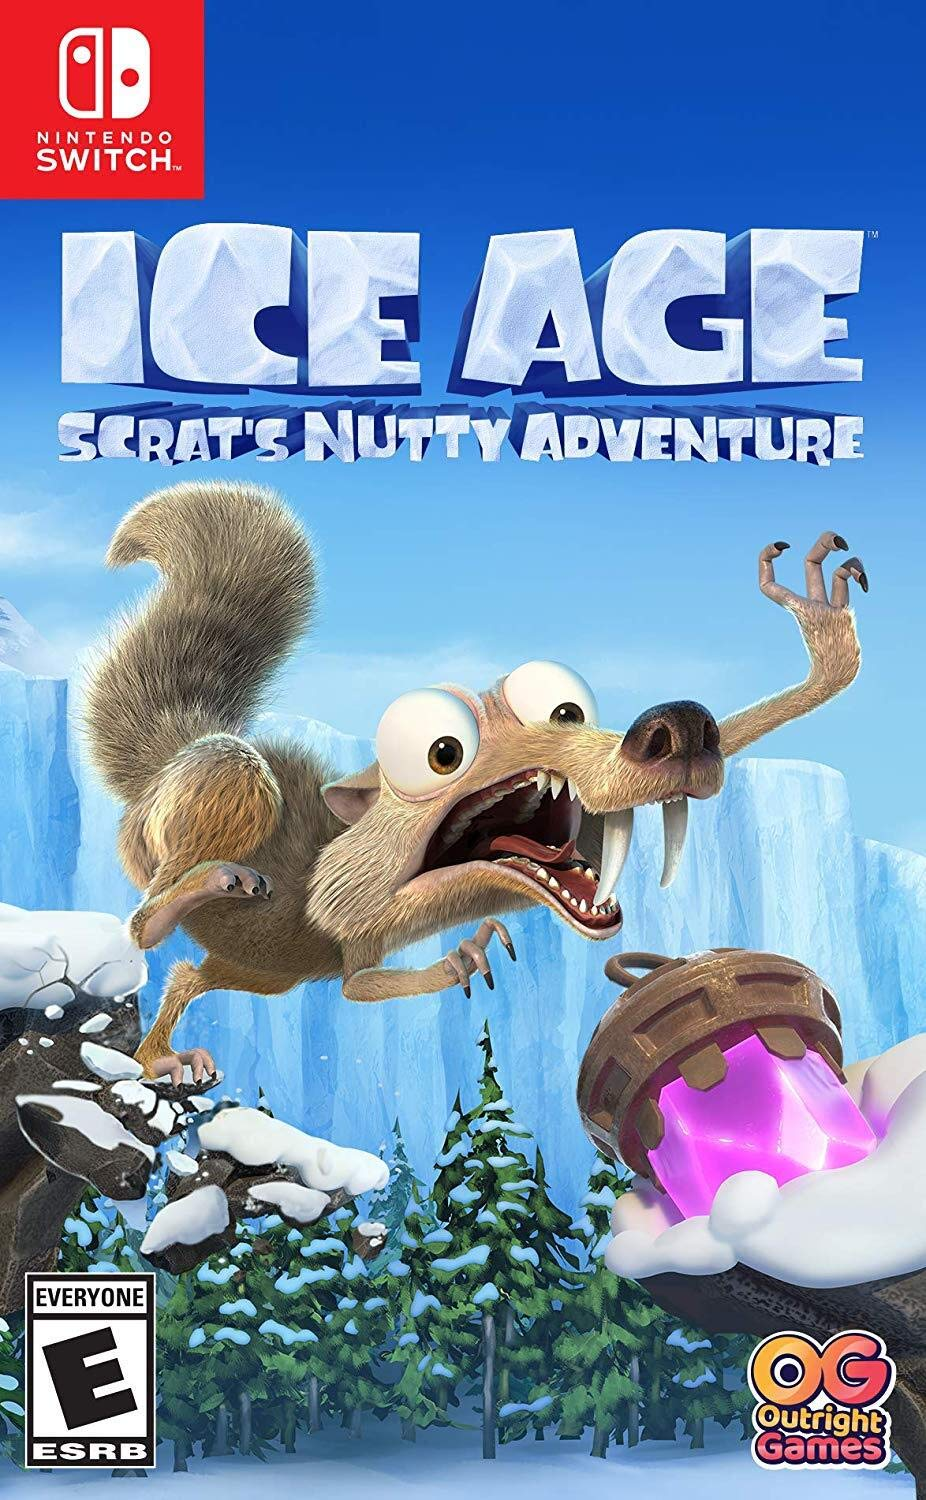 Ice Age Scrats Nutty Adventure